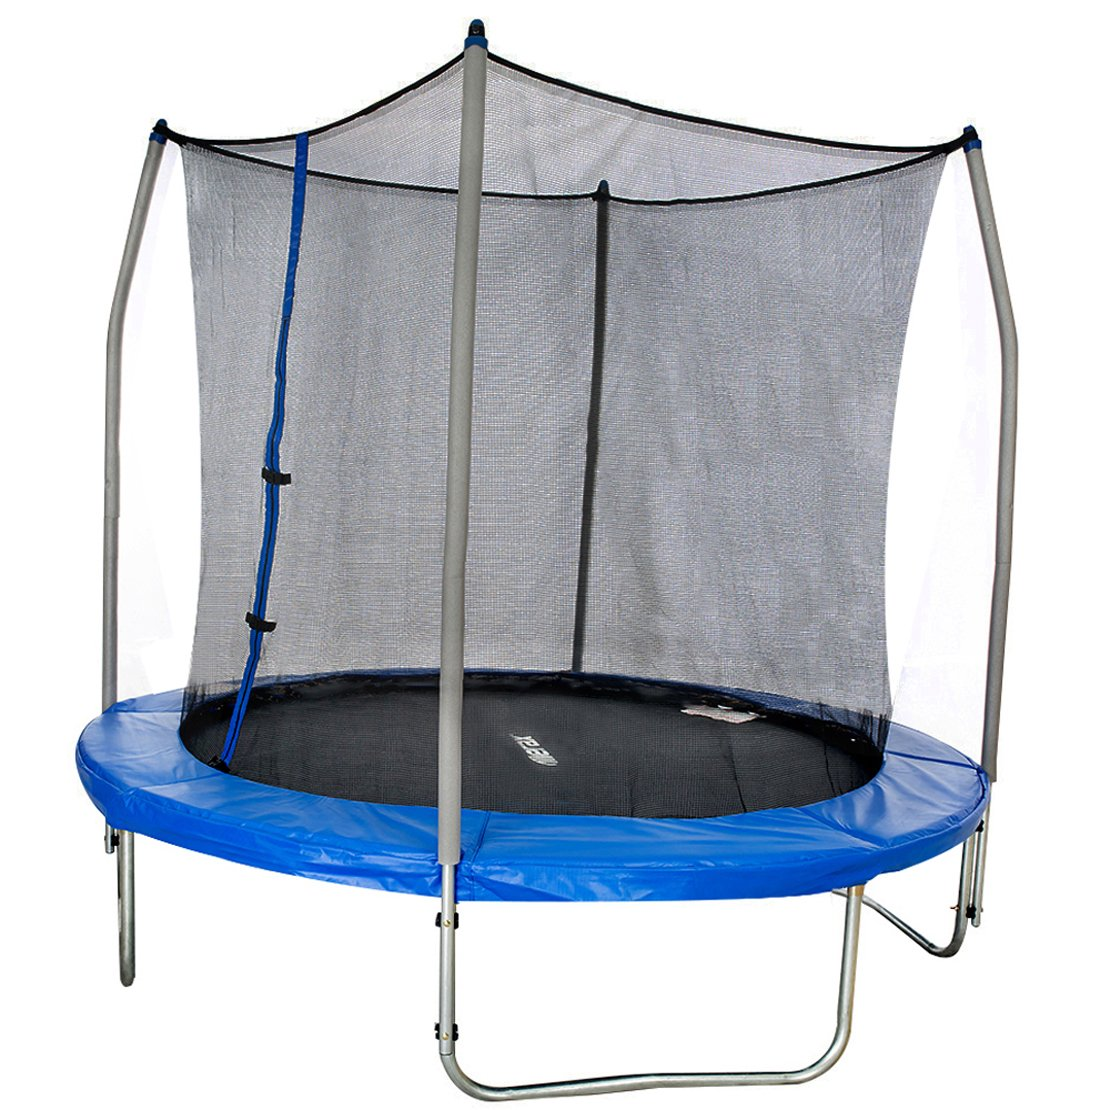 Suitable for use by both children and adults, this trampoline features a  durable PP jumping material and rust-resistant galvanized steel frame that  doesn't ... - The Top 50 Safest Trampolines: Ratings, Reviews & More Safety.com